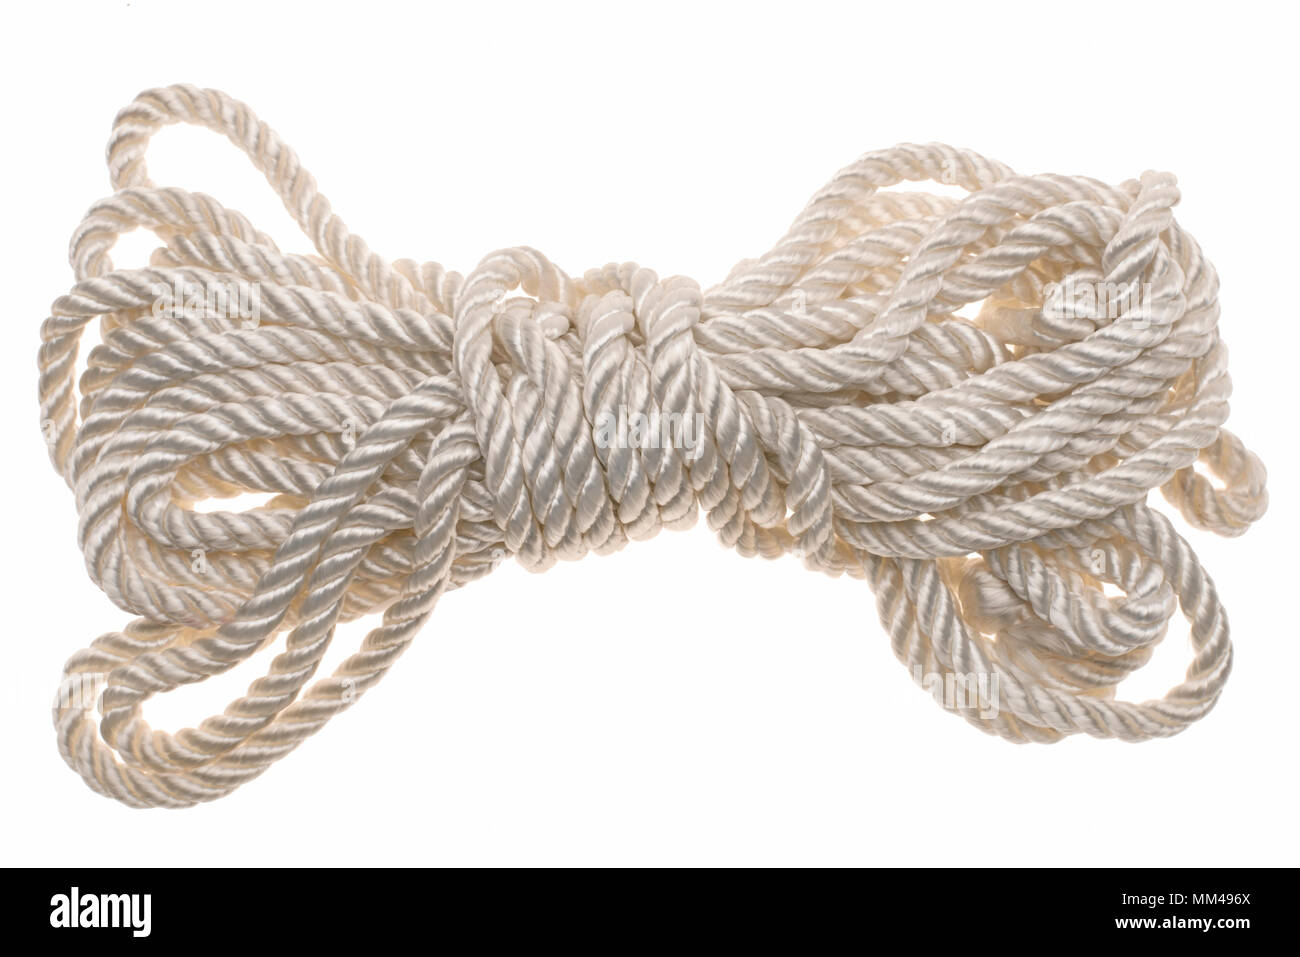 white tied rope - Stock Image